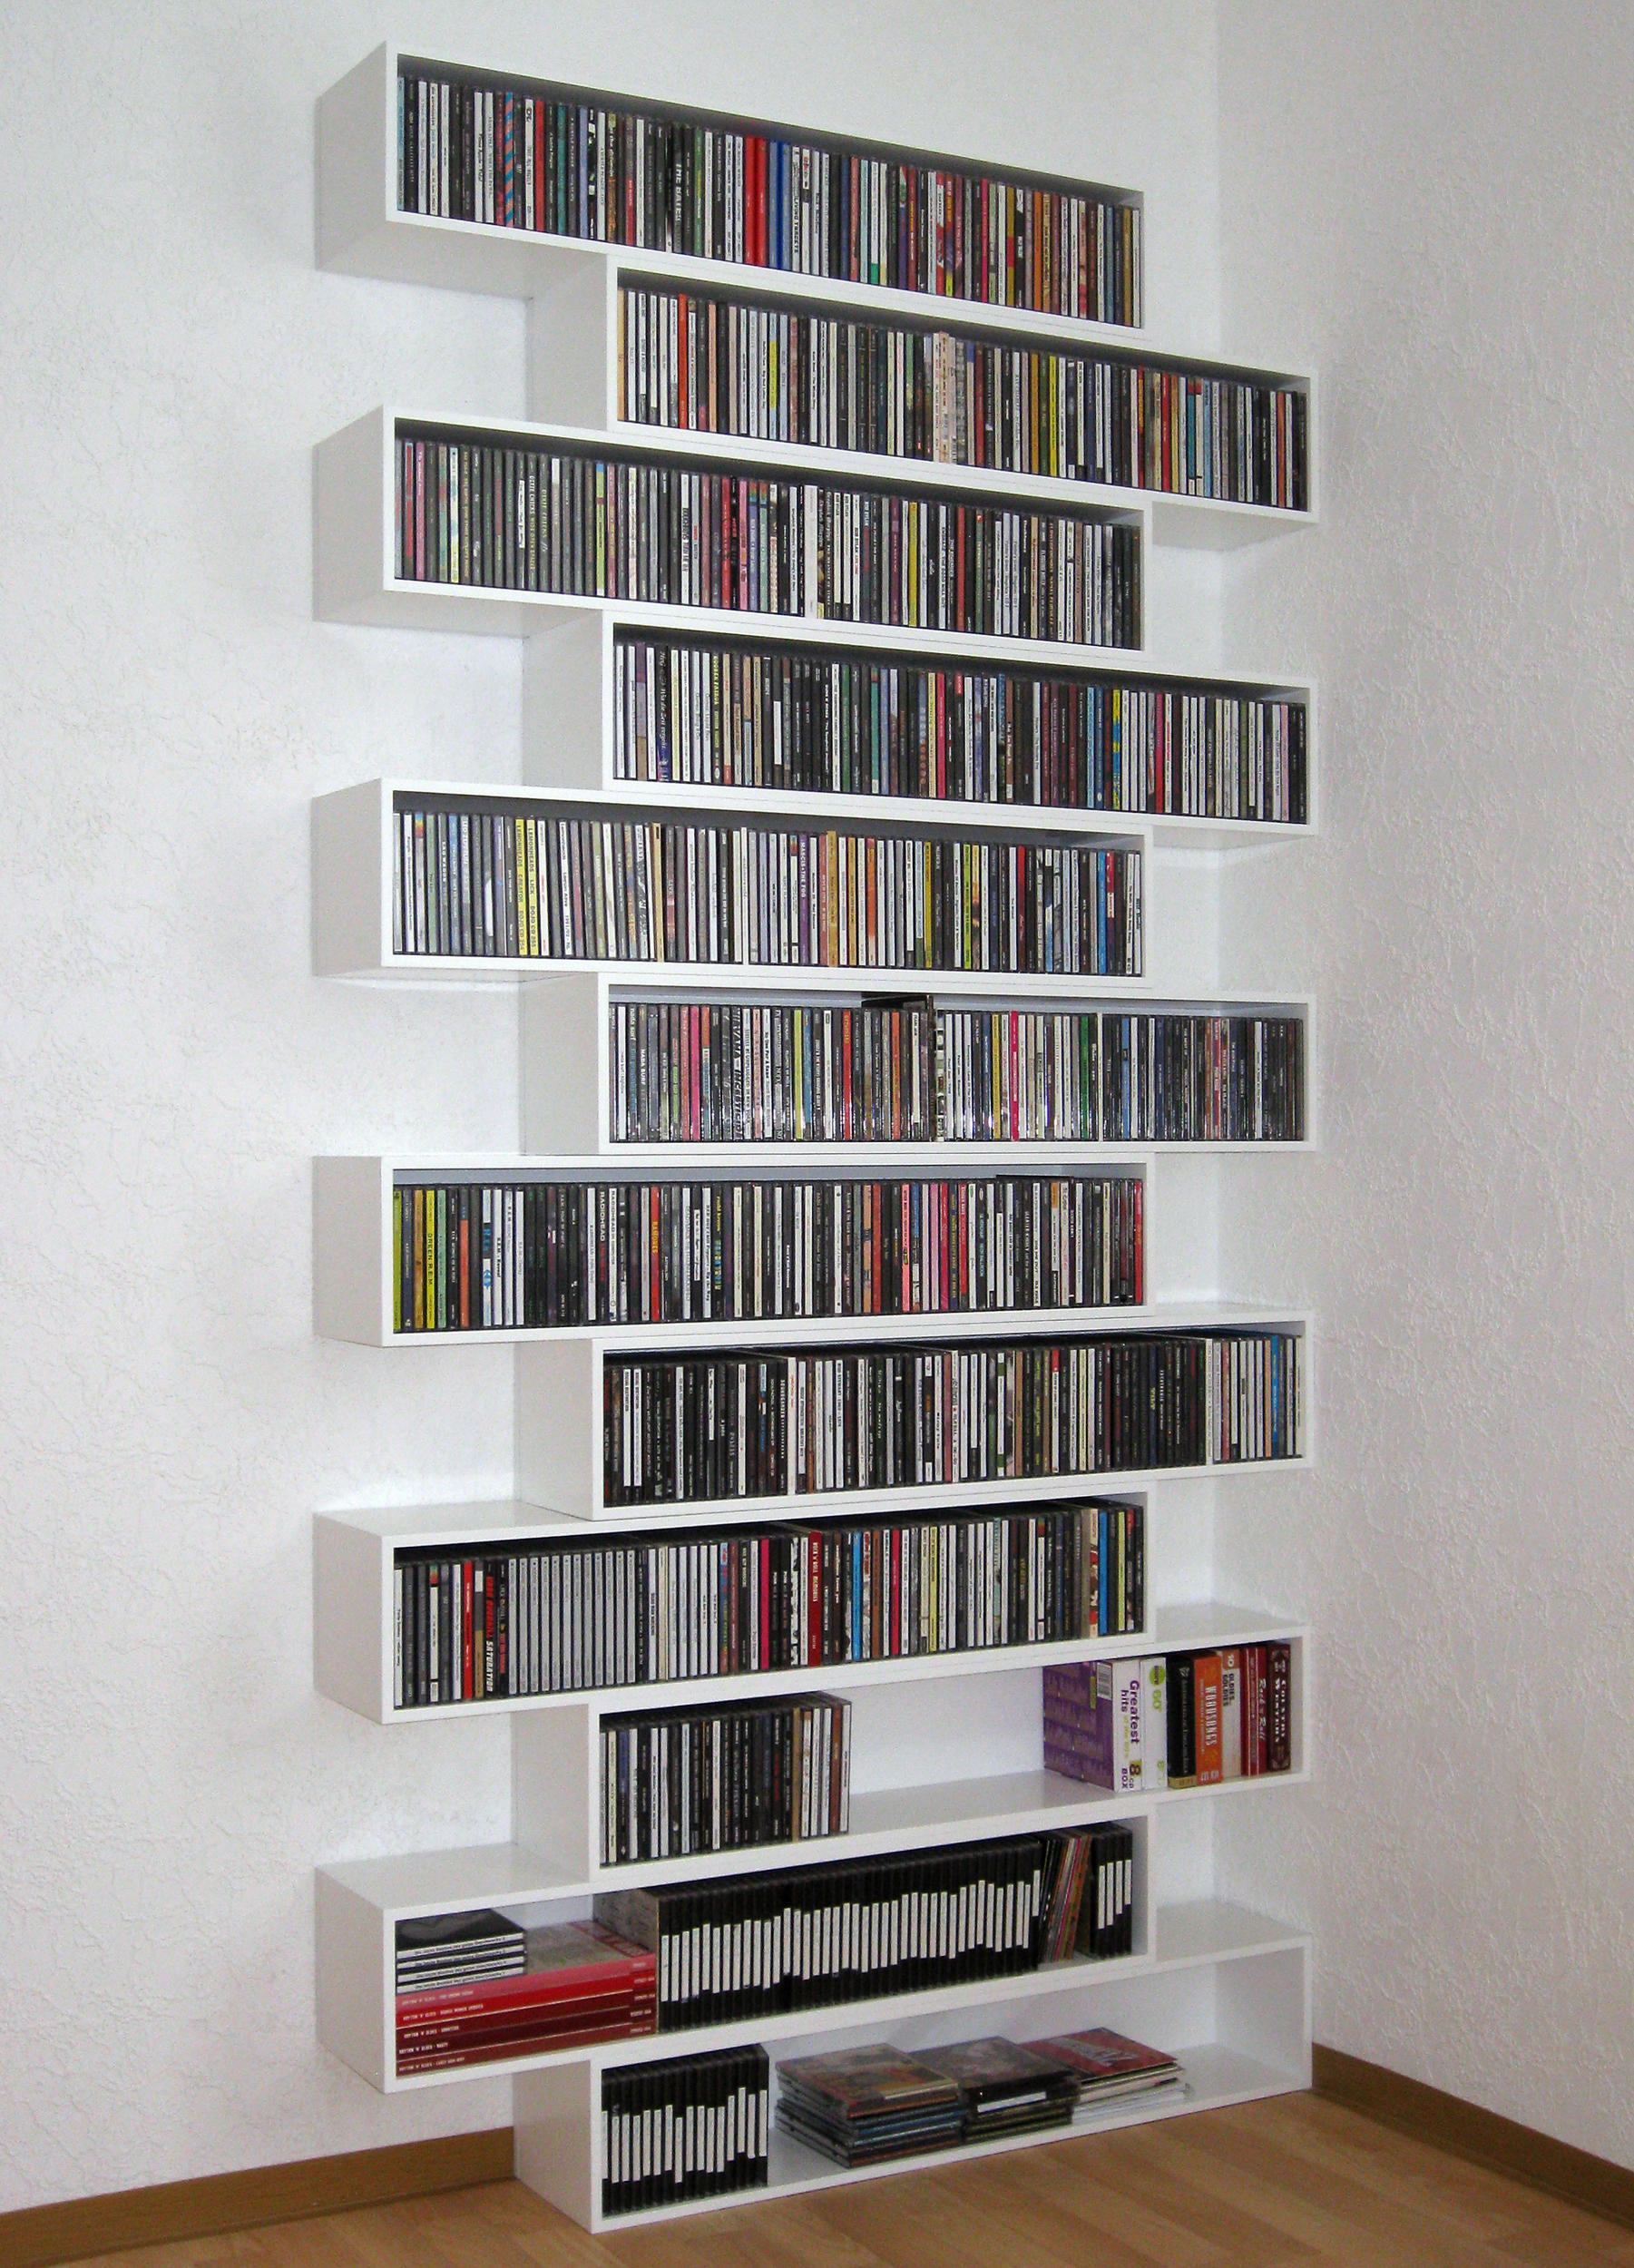 Cd Regal Cubit Shelving System - Shelving From Cubit | Architonic